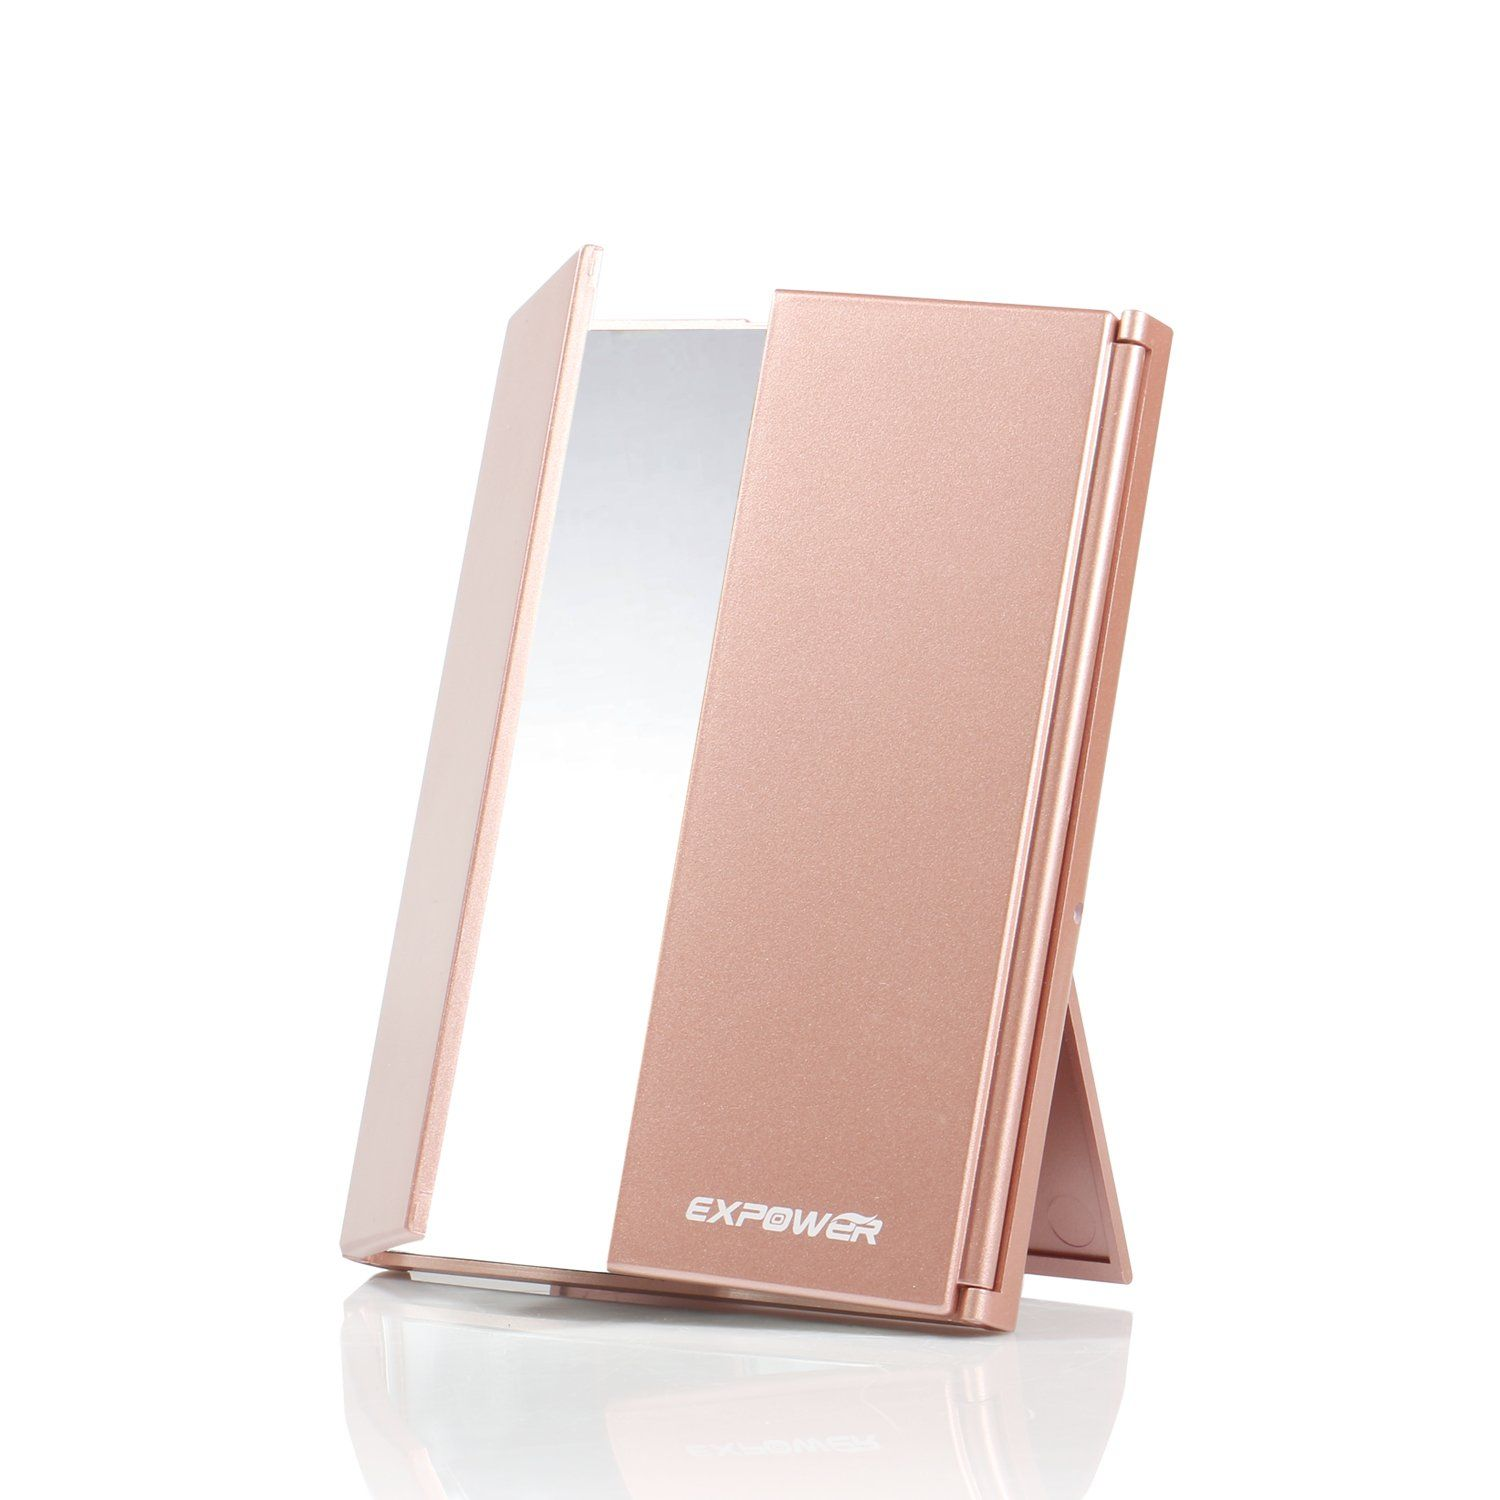 Expower TriFold Lighted Travel Makeup Mirror, Compact Led